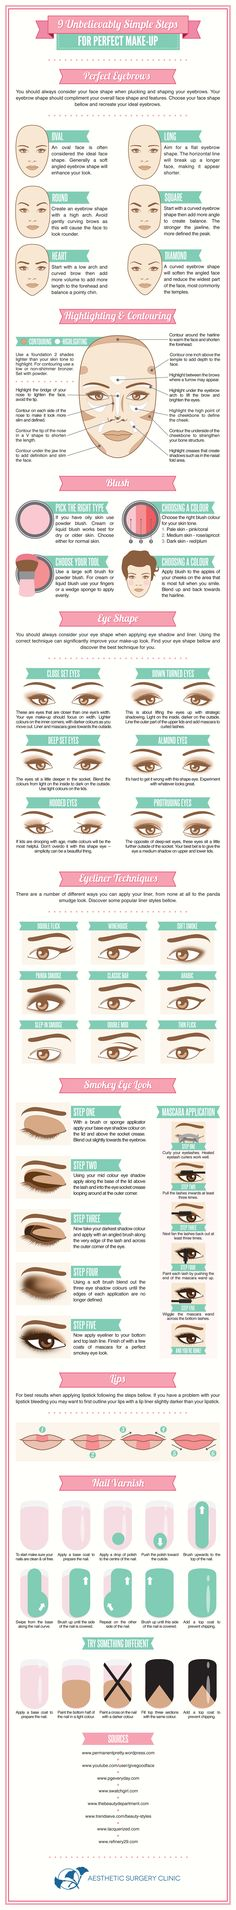 9 Unbelievably Simple Steps to Perfect Makeup (Infographic!) | Modern Salon